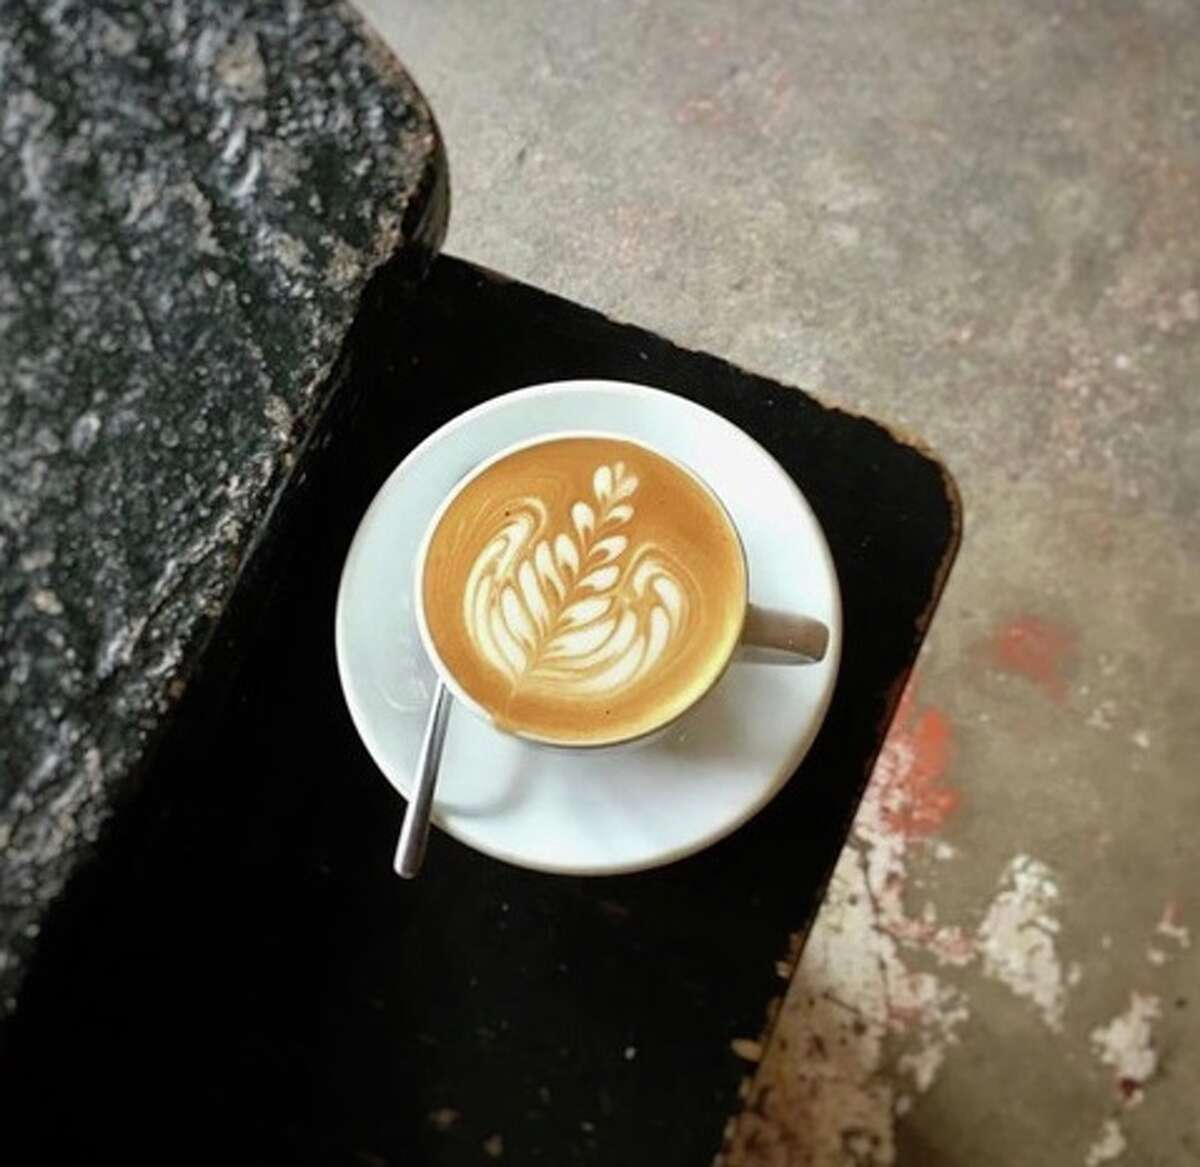 Amaya Coffee, a new concept from the owner of Catalina Coffee and Amaya Roasting Company, will open at Finn Hall, downtown's food hall opening summer 2018.